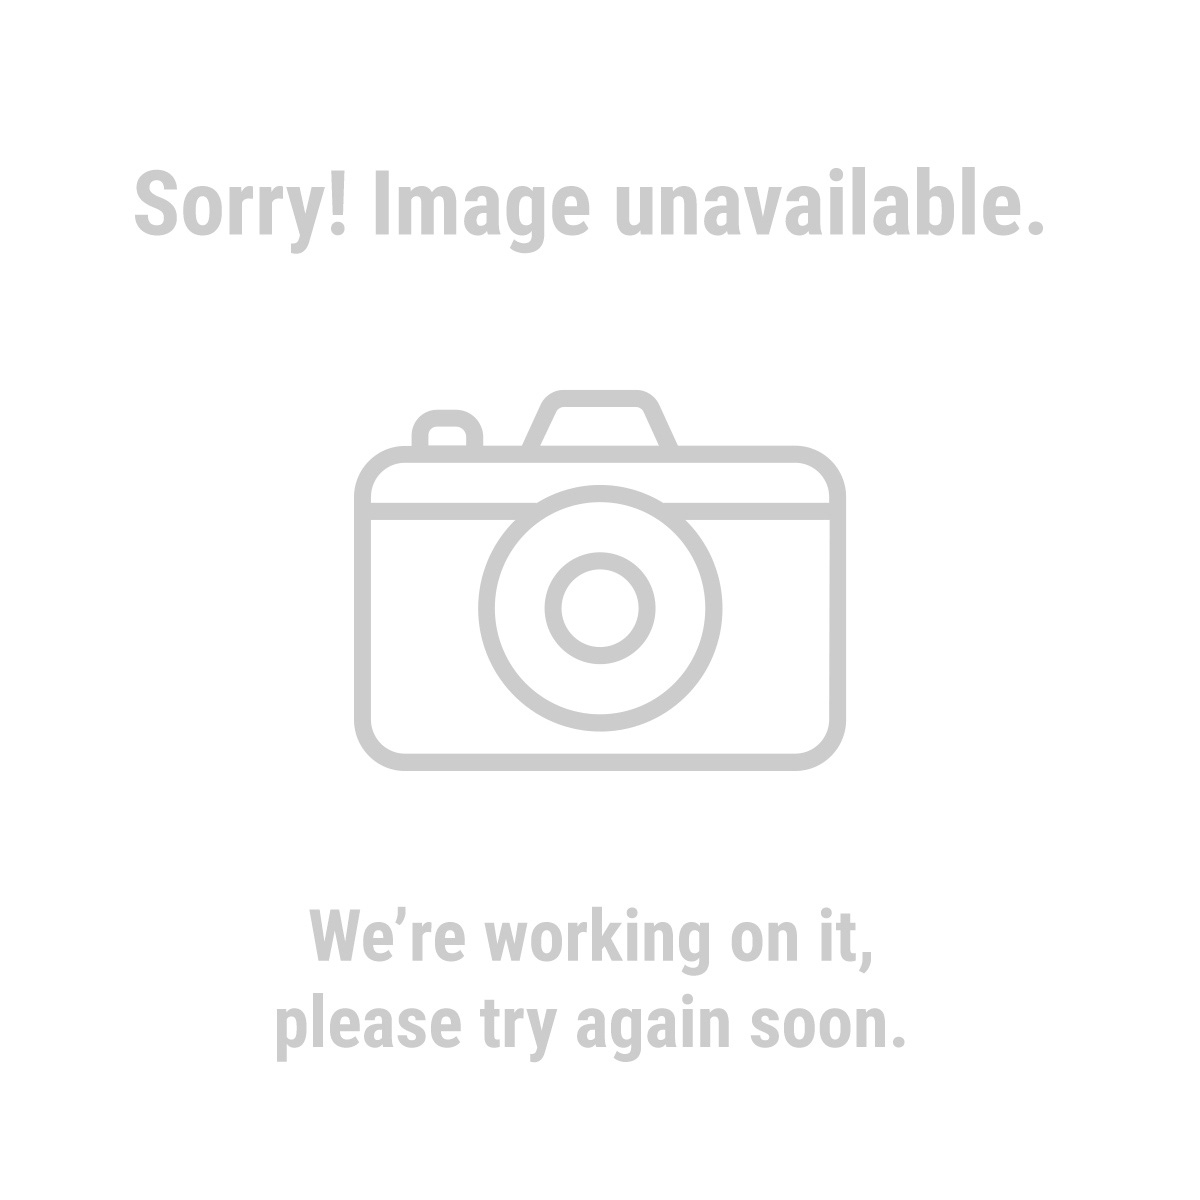 Chicago Electric Generators 66619 800 Rated Watts/900 Max Watts Portable Generator